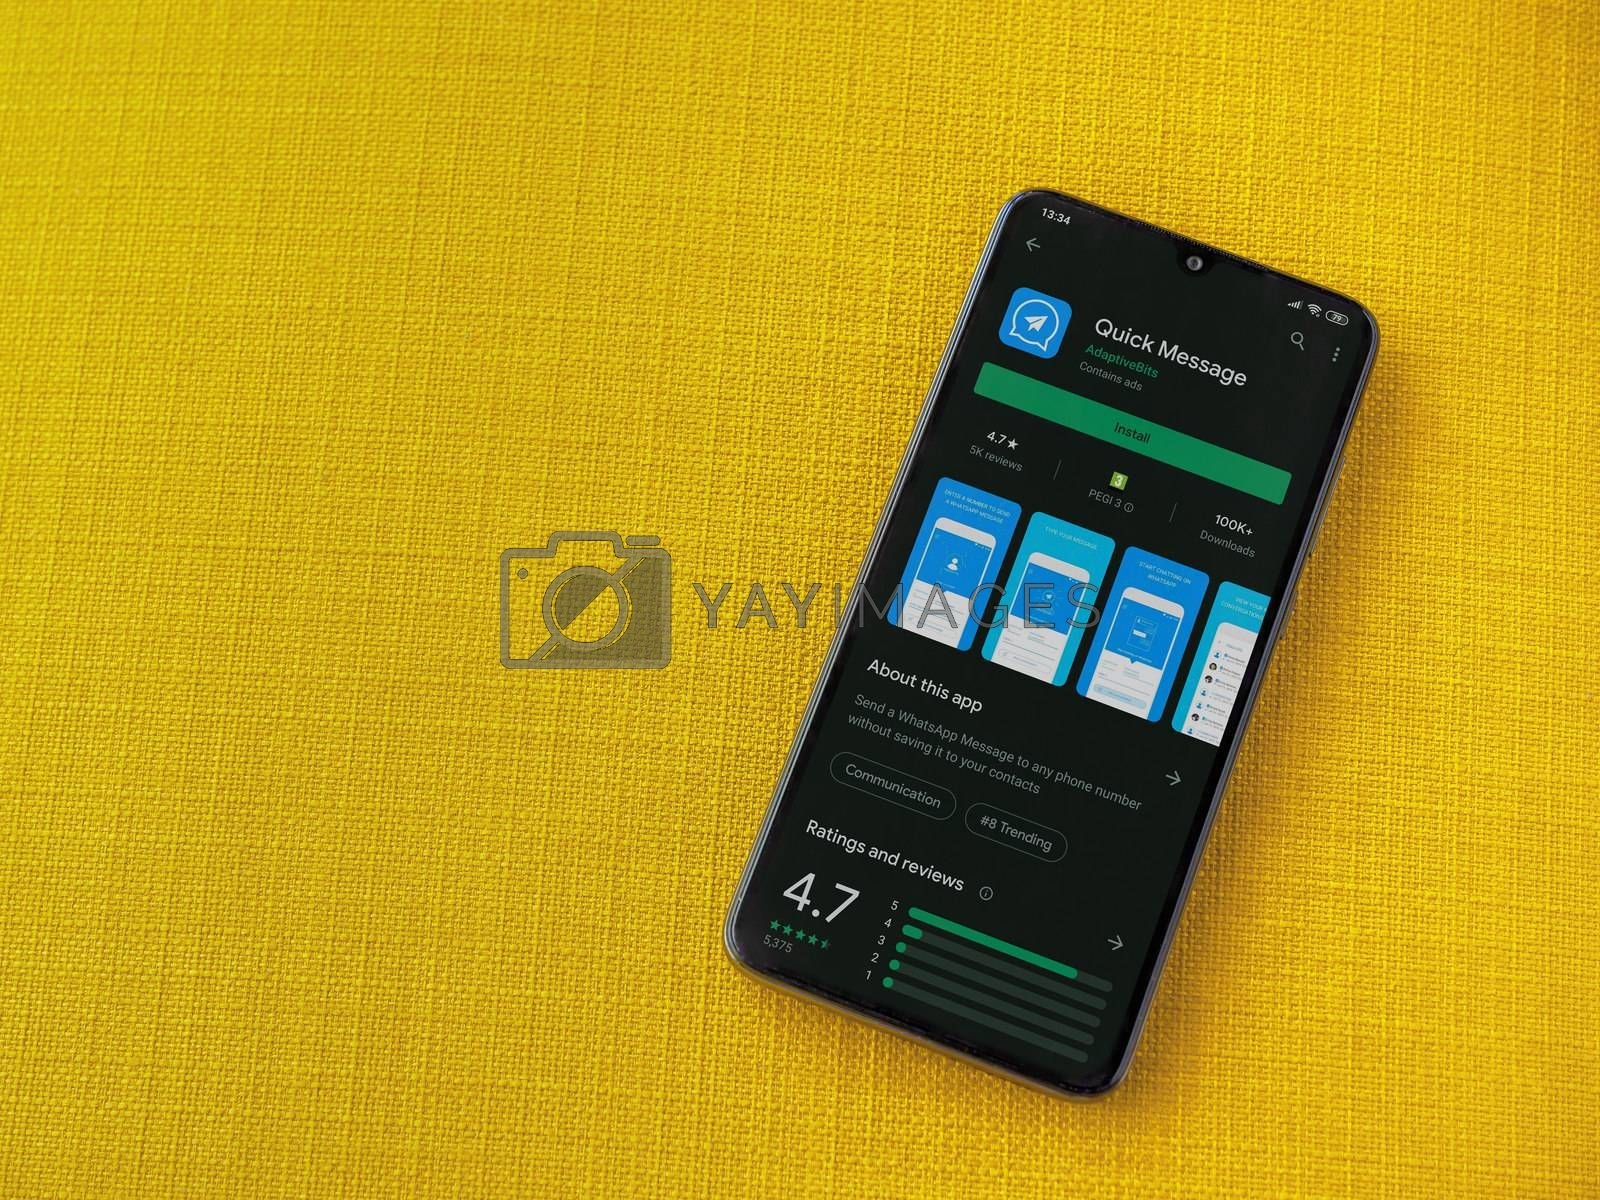 Lod, Israel - July 8, 2020: Quick Message app play store page on the display of a black mobile smartphone on a yellow fabric background. Top view flat lay with copy space.